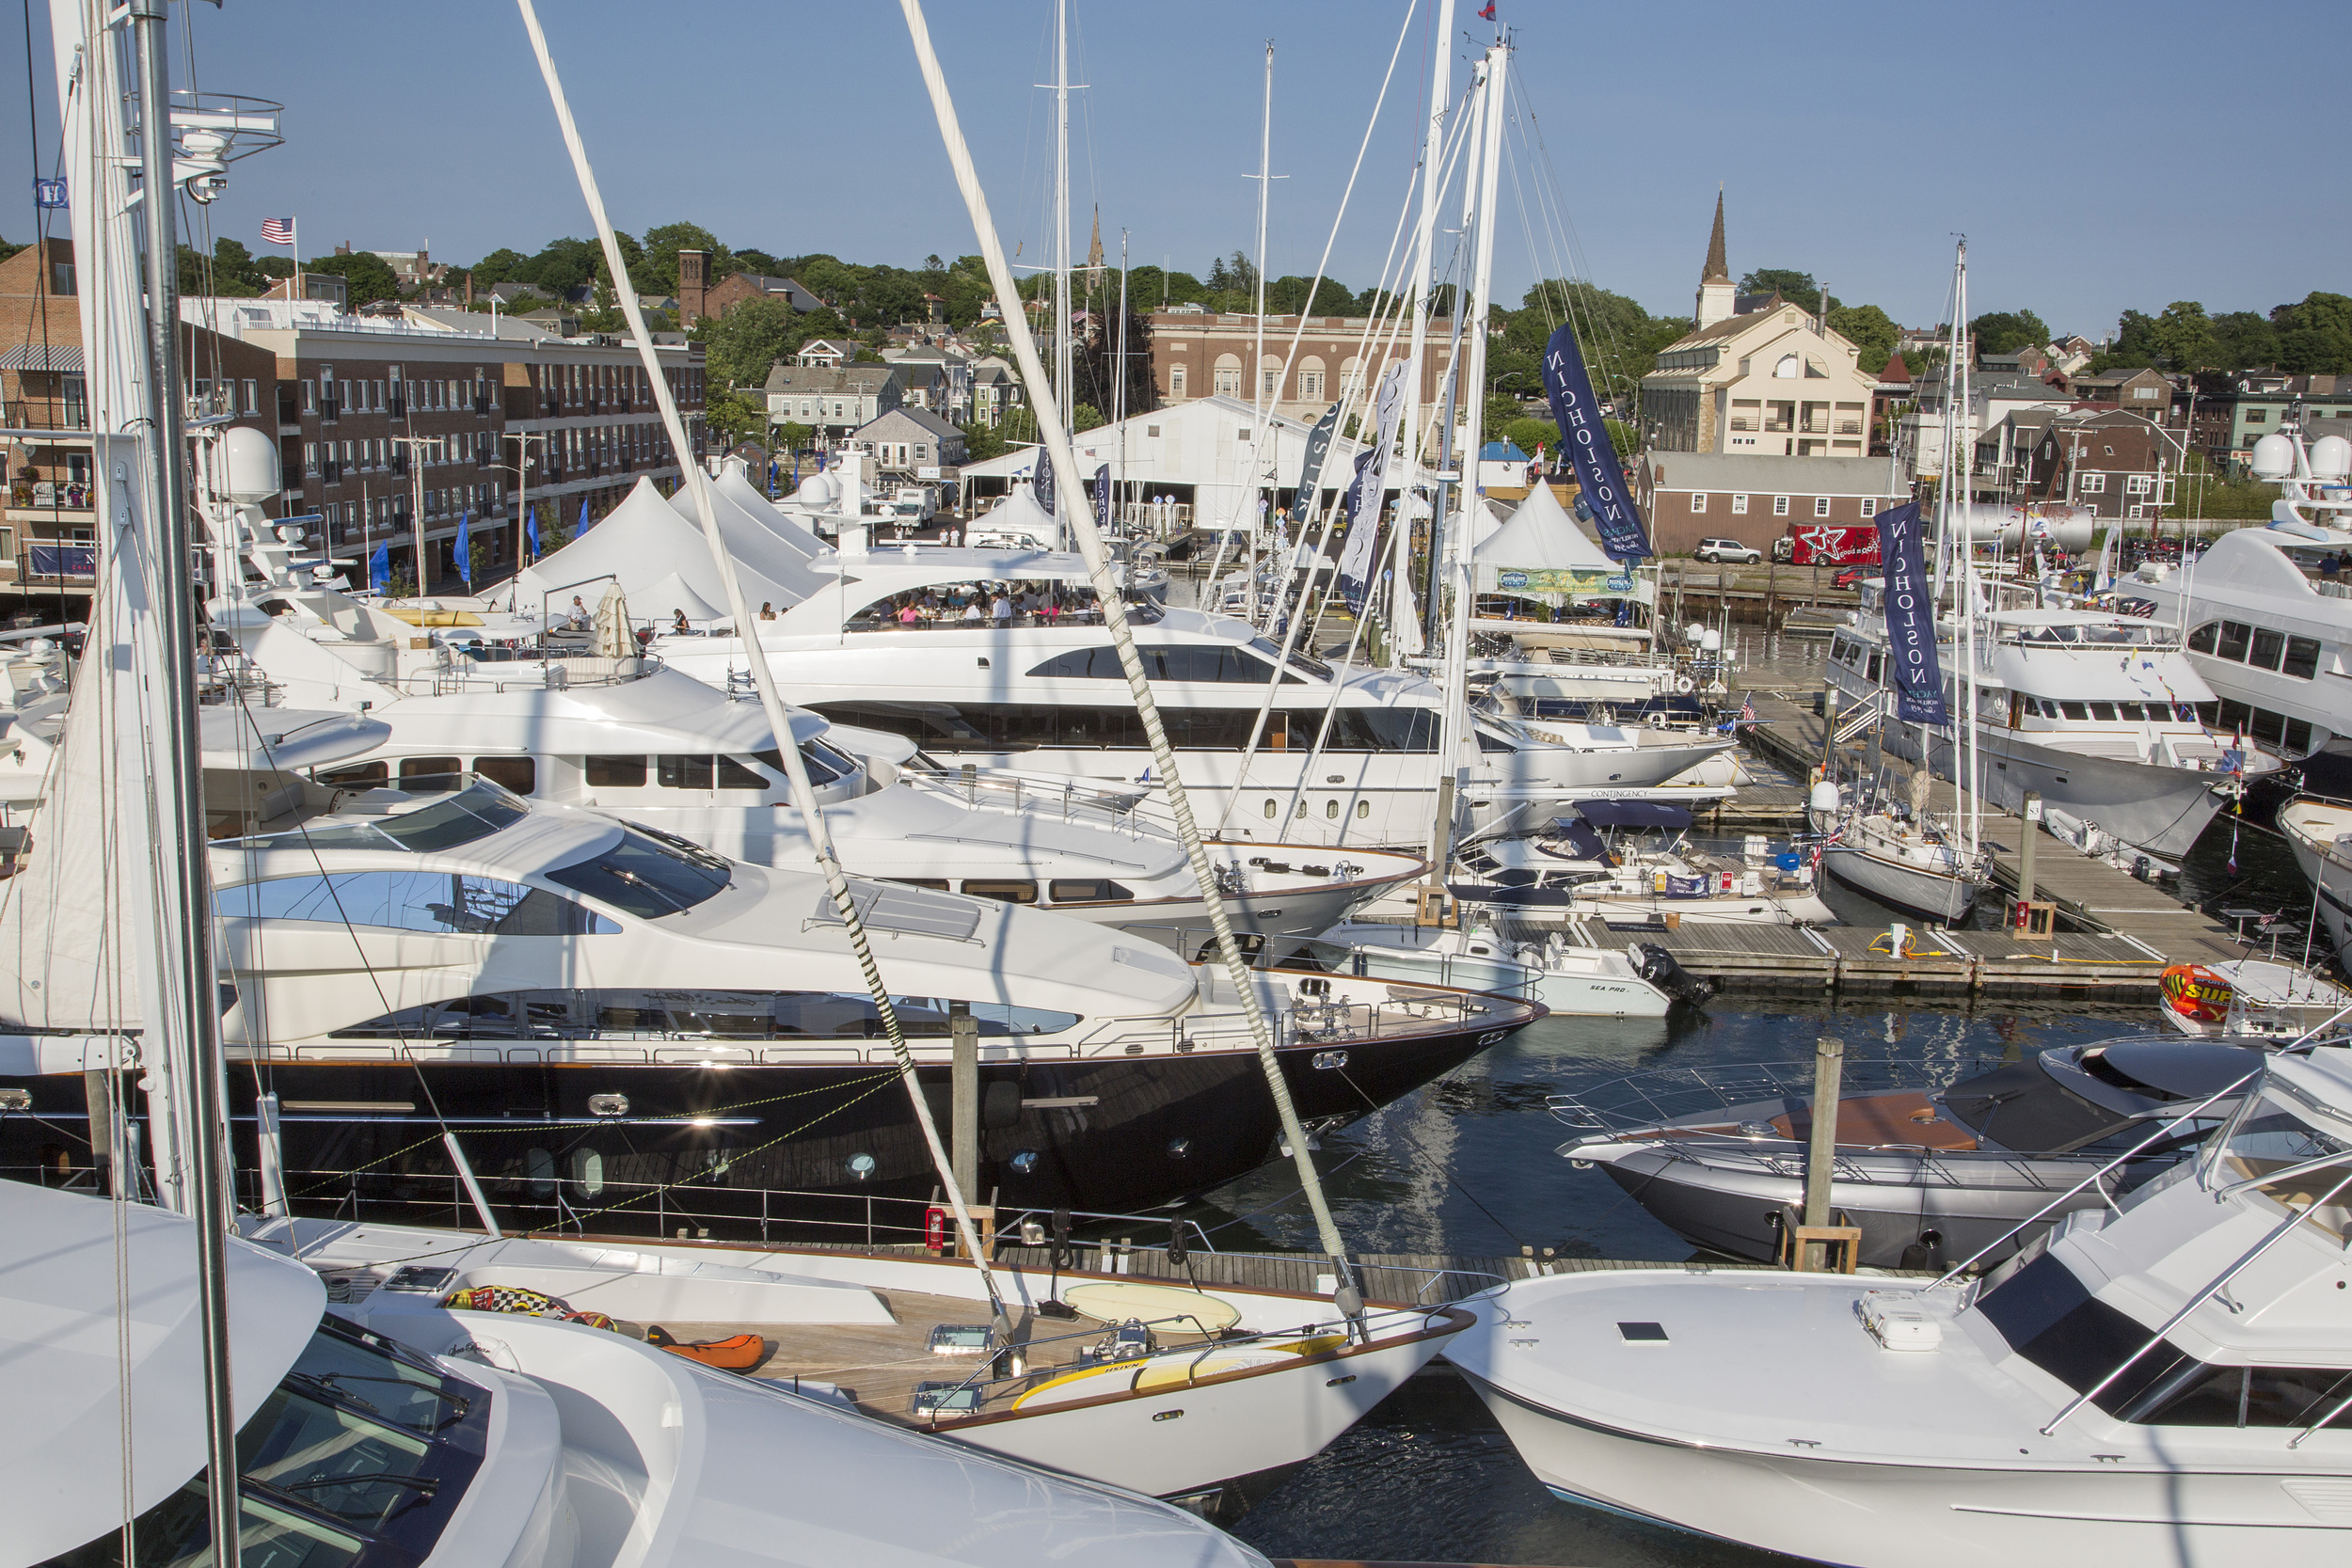 Participating yachts at the 2014 Newport Charter Yacht Show (Photo Credit: Billy Black)